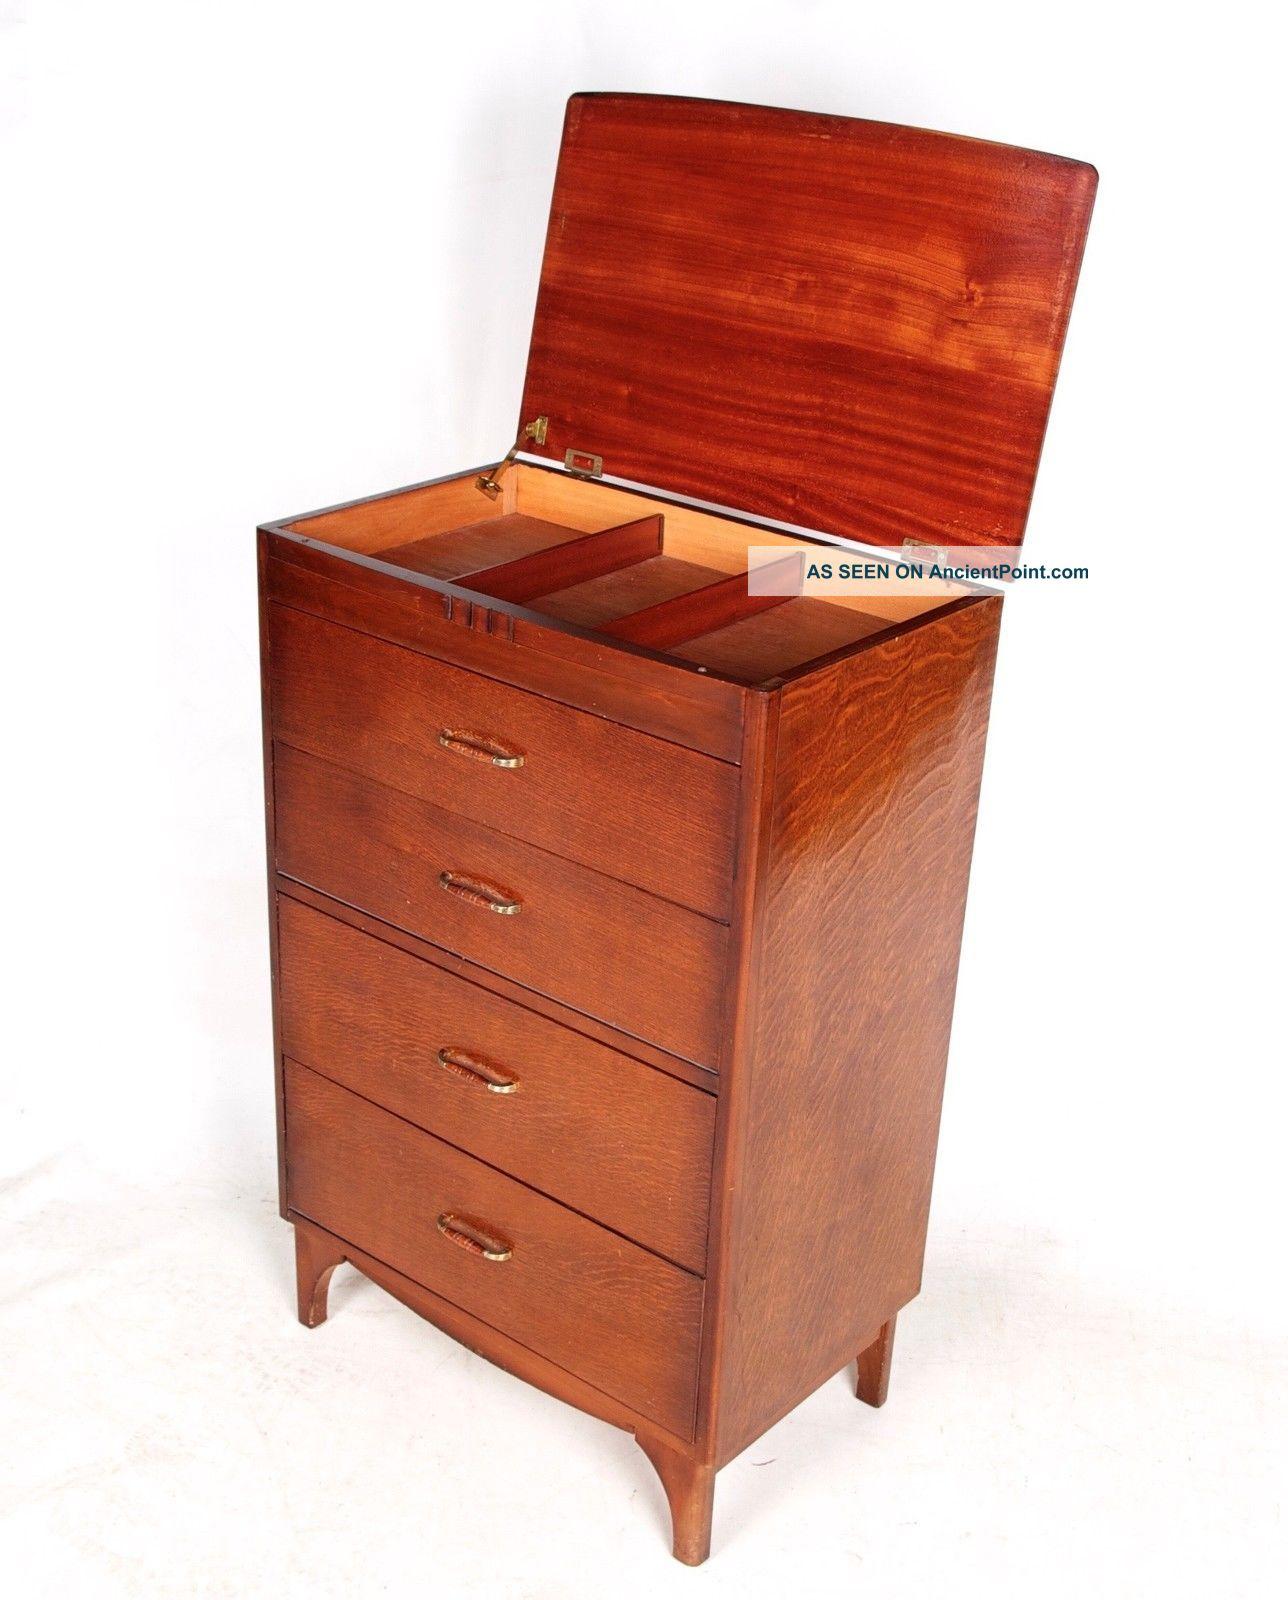 Antique Vintage Oak Tallboy Chest Of Drawers Bachelors Chest French 20th Century photo